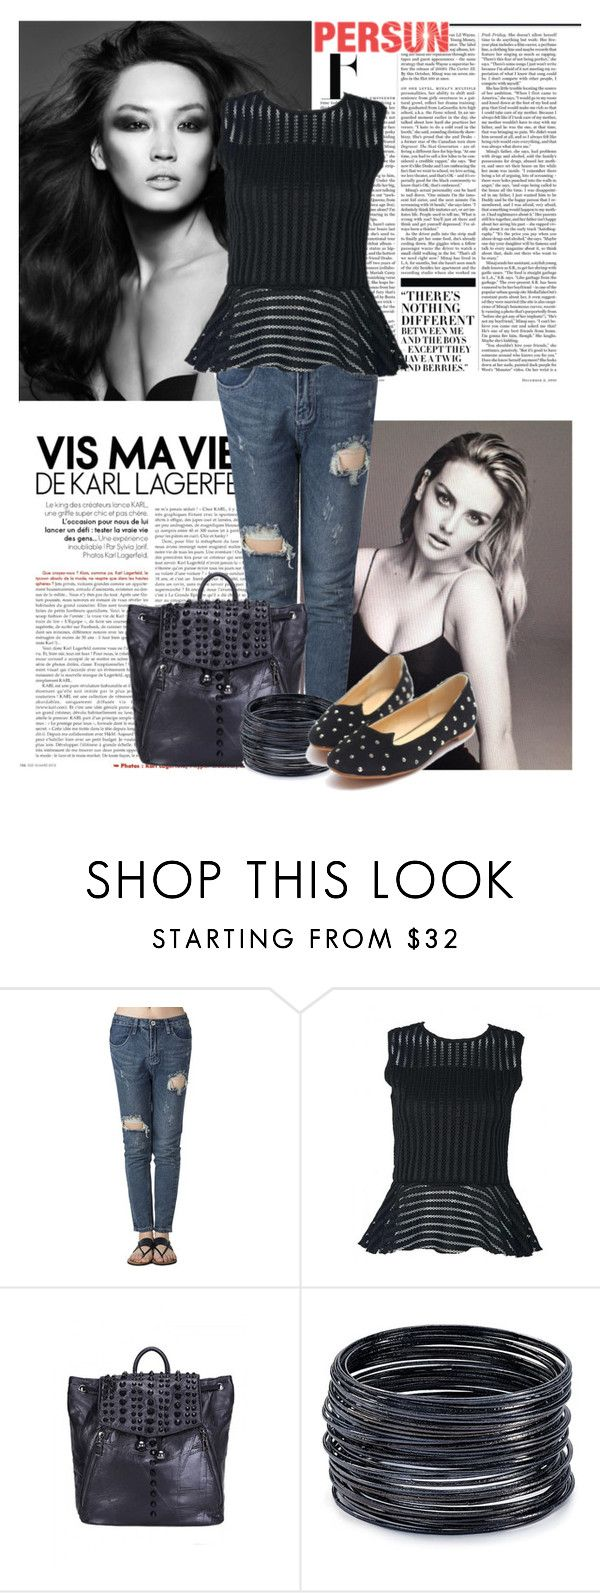 """""""Persunmall.com 9"""" by laurafox27 ❤ liked on Polyvore featuring Nicki Minaj and ABS by Allen Schwartz"""